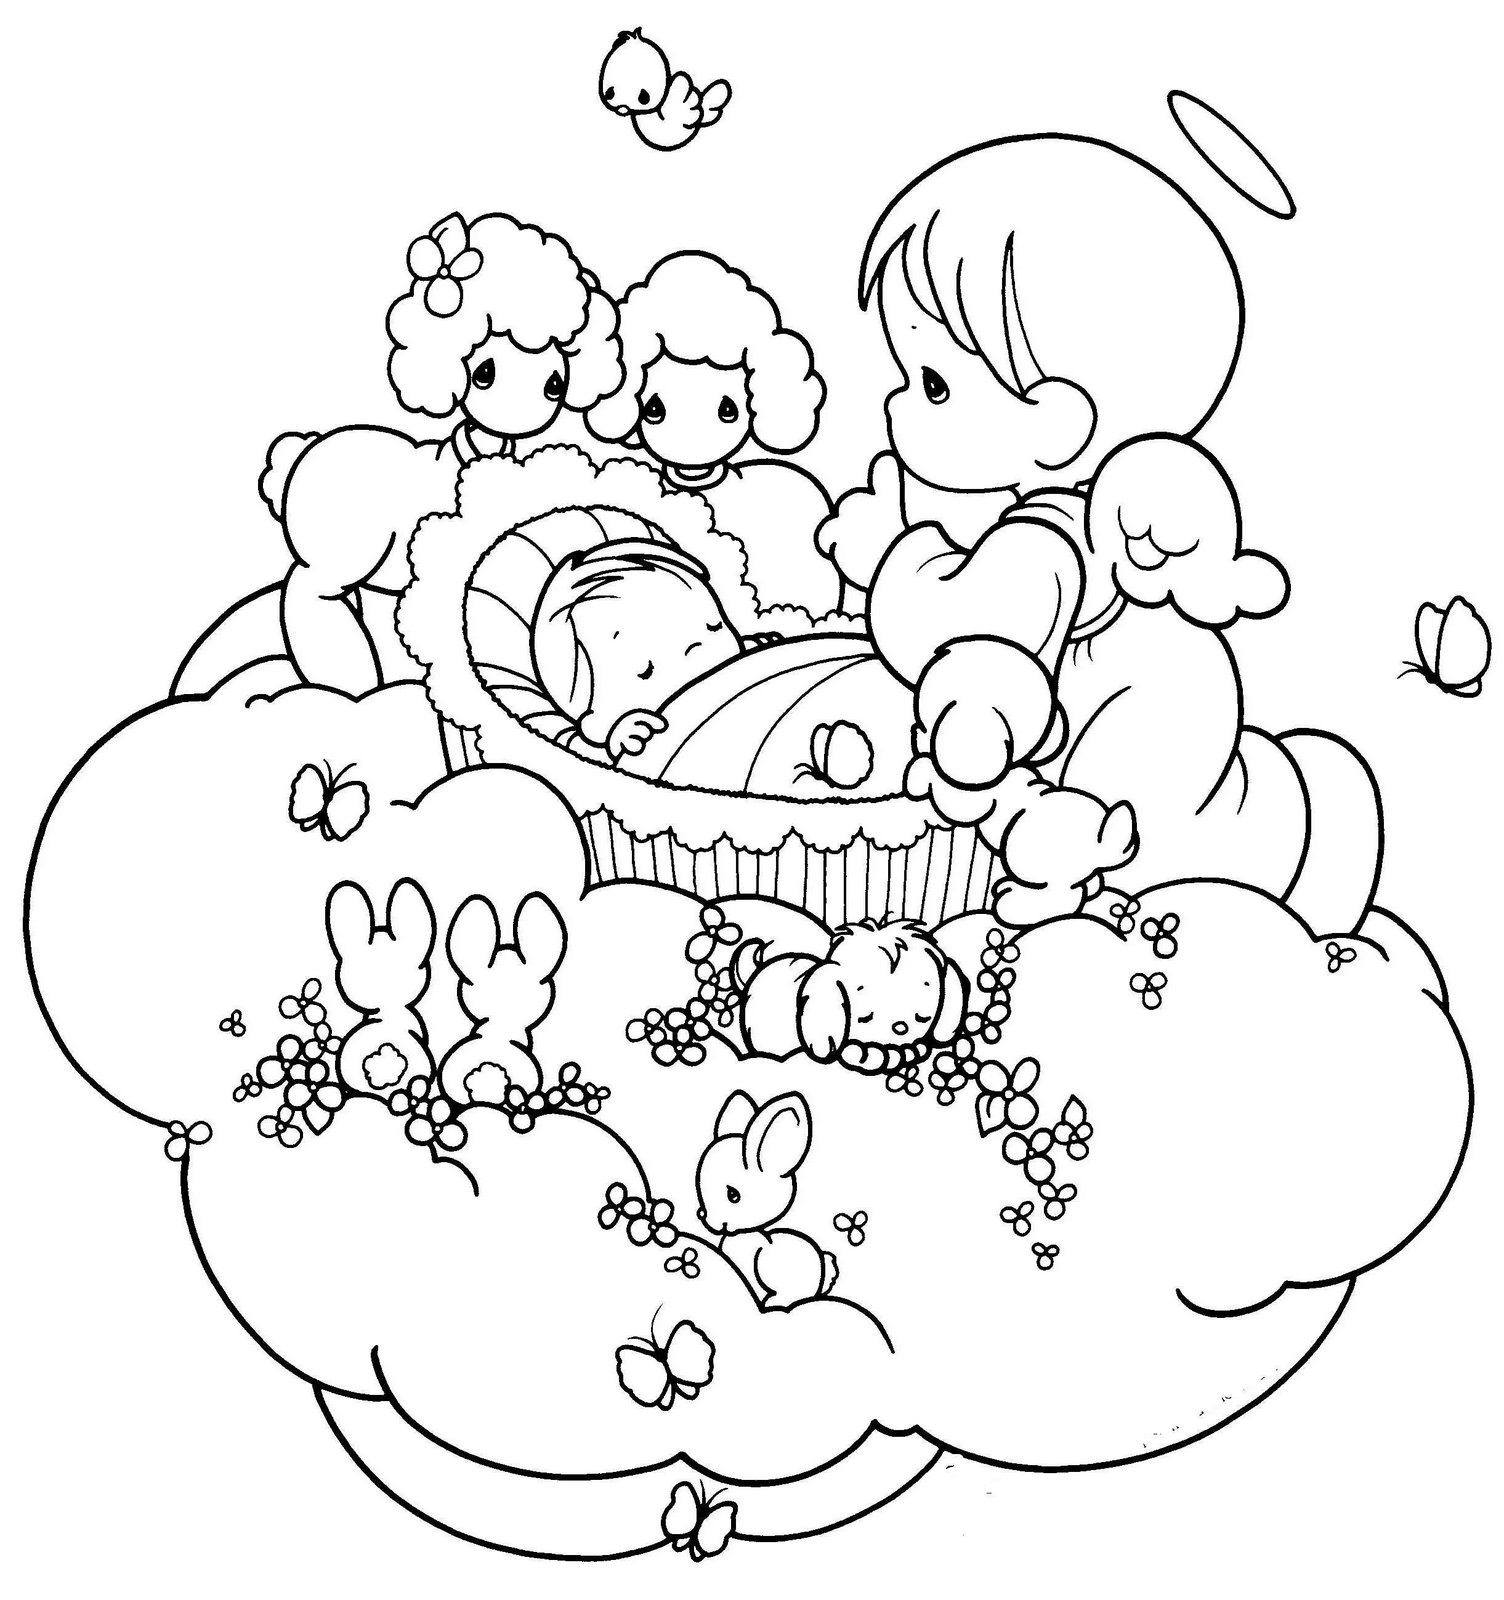 Precious moments angels wallpaper imagui for Precious moments angel coloring pages